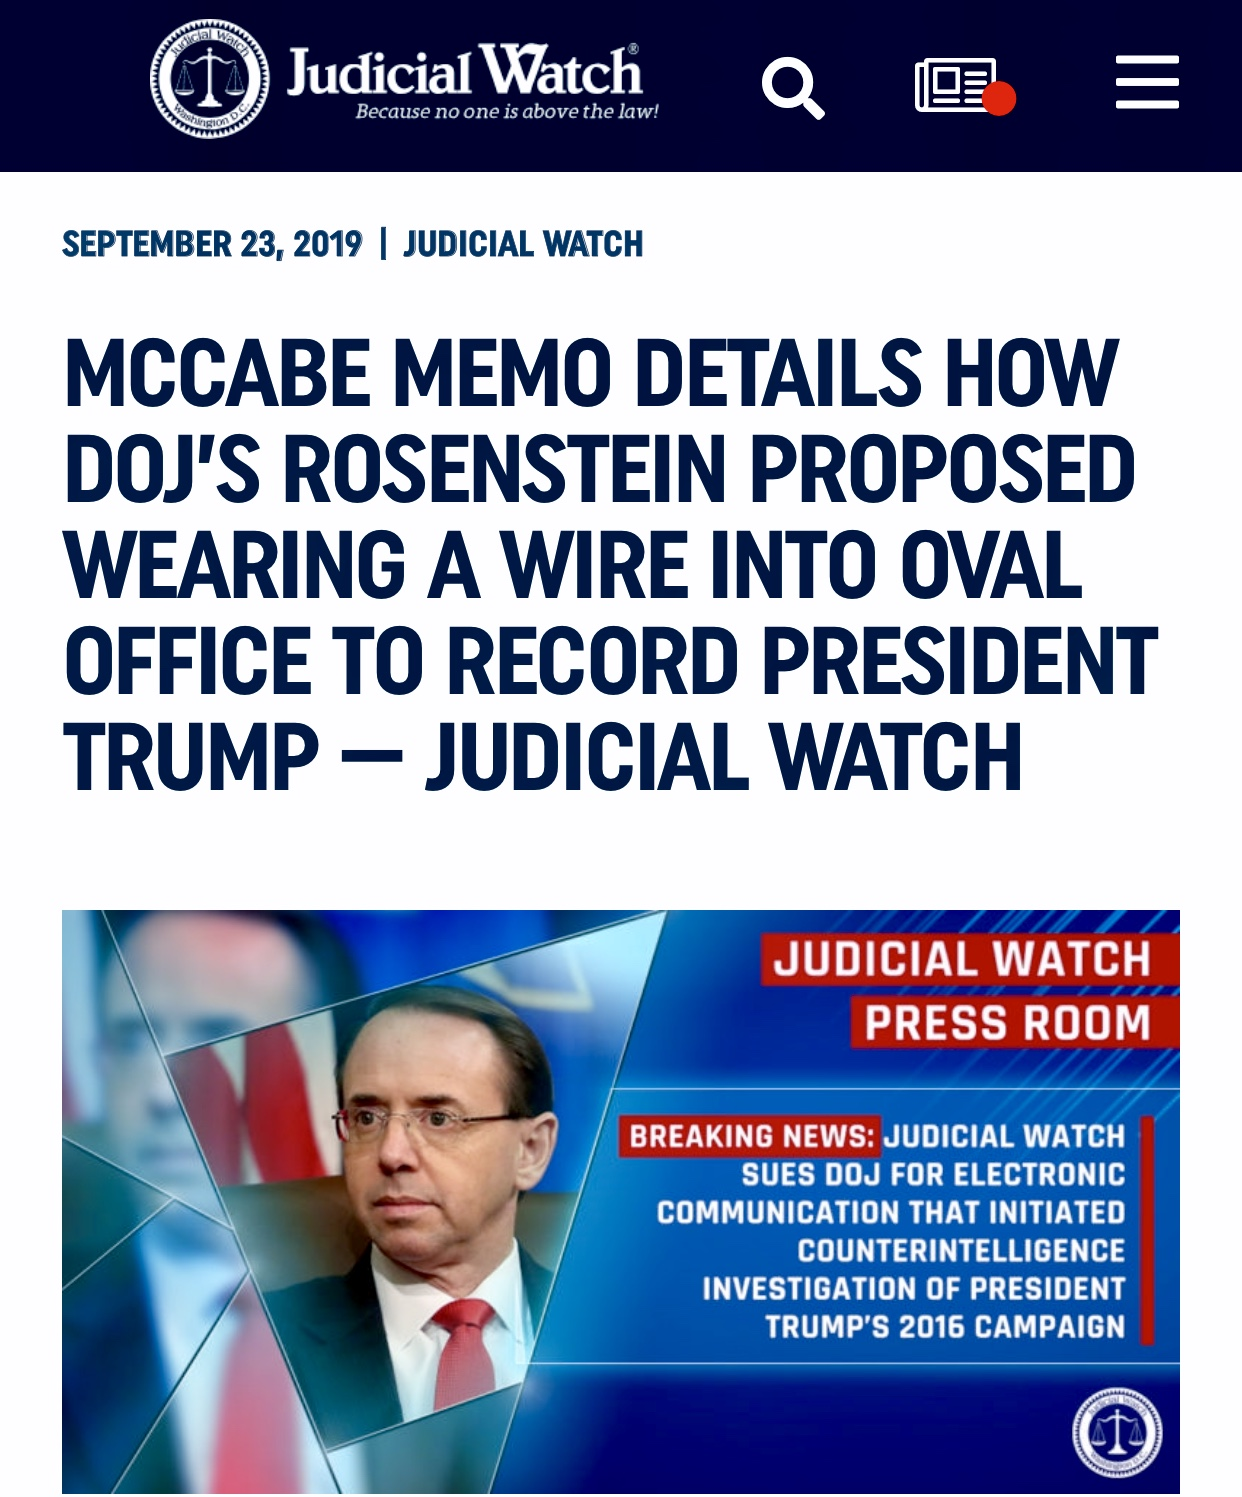 McCabe Memo Details How DOJ's Rosenstein Proposed Wearing a Wire into Office to Record President Trump